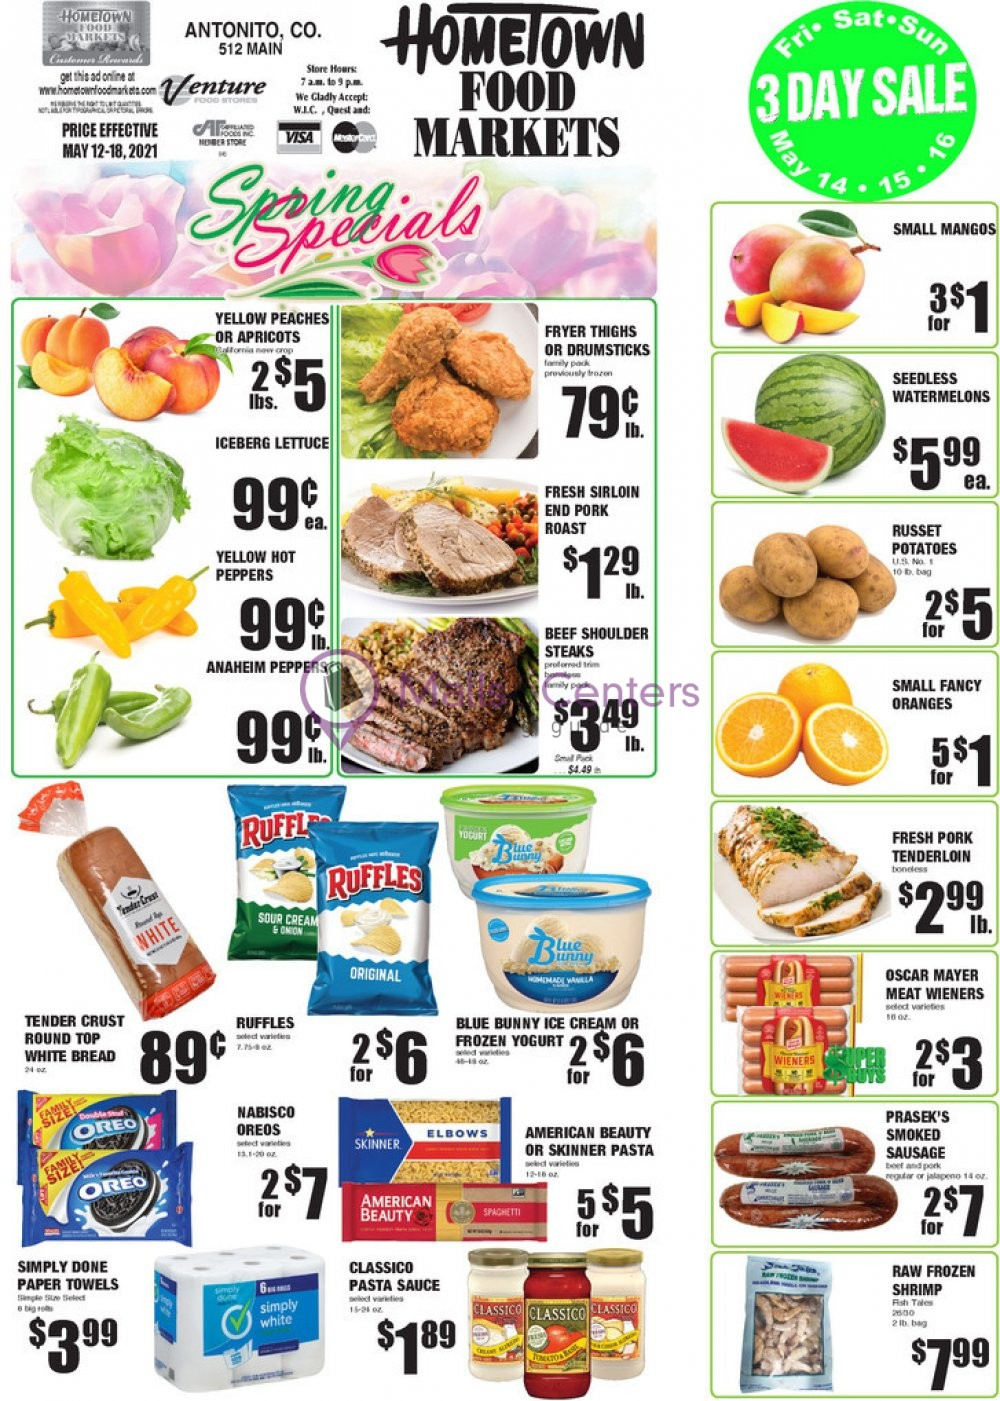 weekly ads HomeTown Food Markets - page 1 - mallscenters.com